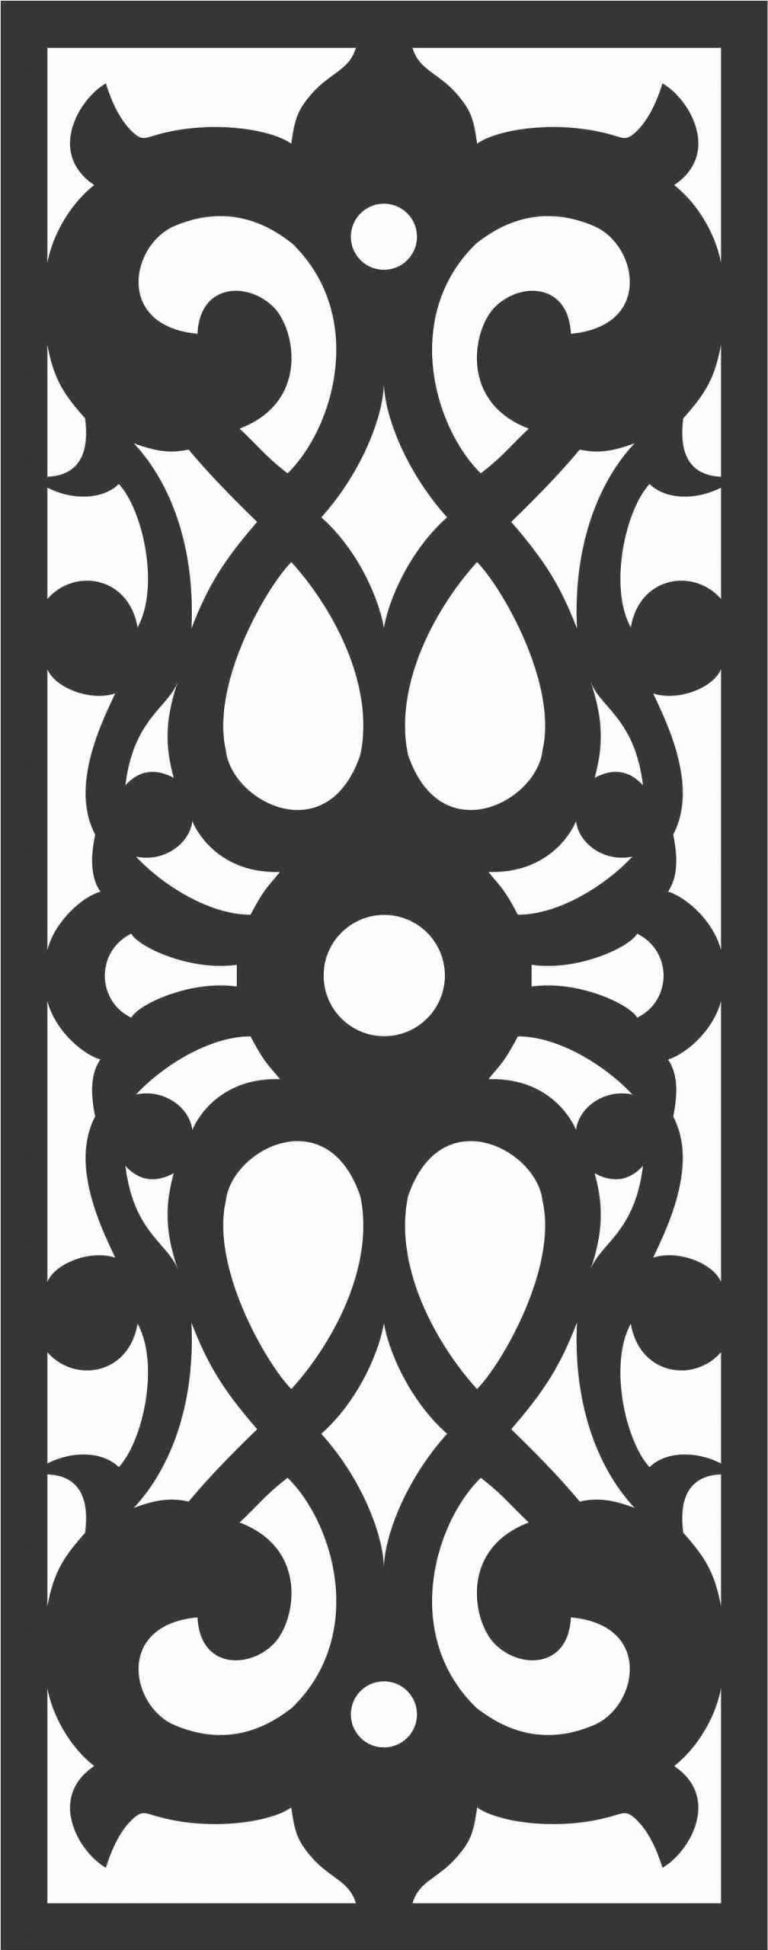 Floral Screen Patterns Design 44 Free DXF File